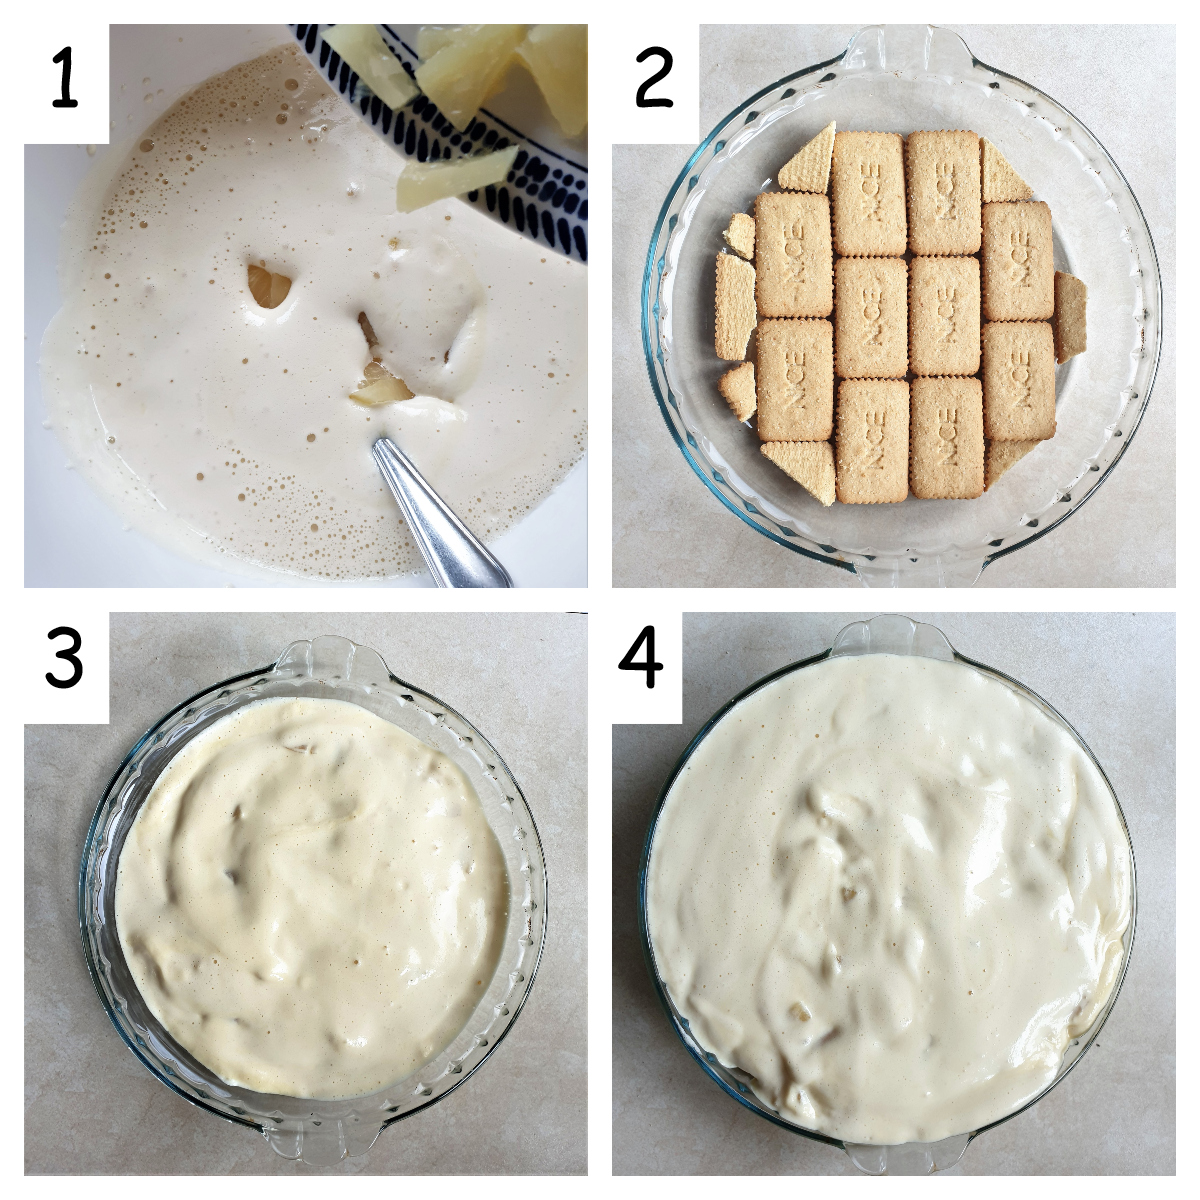 A collage of 4 images showing how to assemble the pineapple fridge tart.